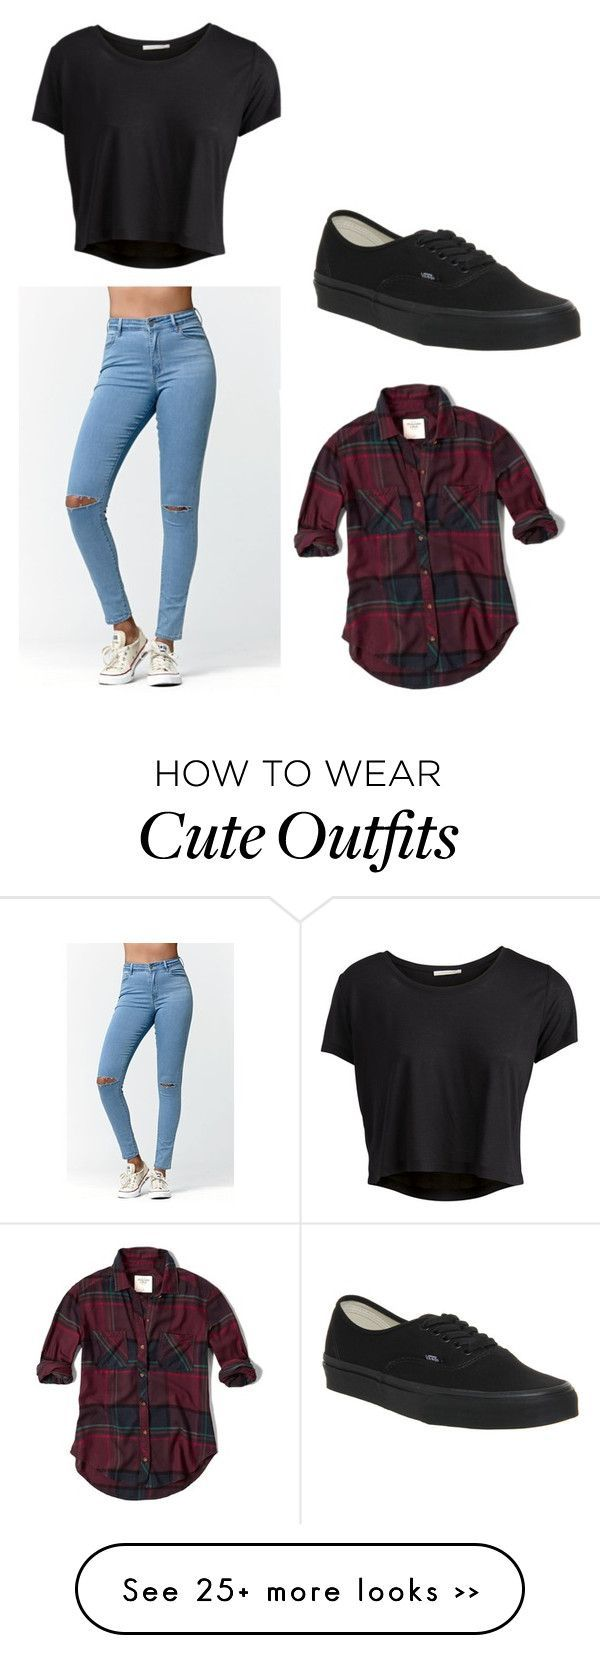 Cute Outfits For School 2019 : outfits, school, Casual, School, Outfits, Outfit